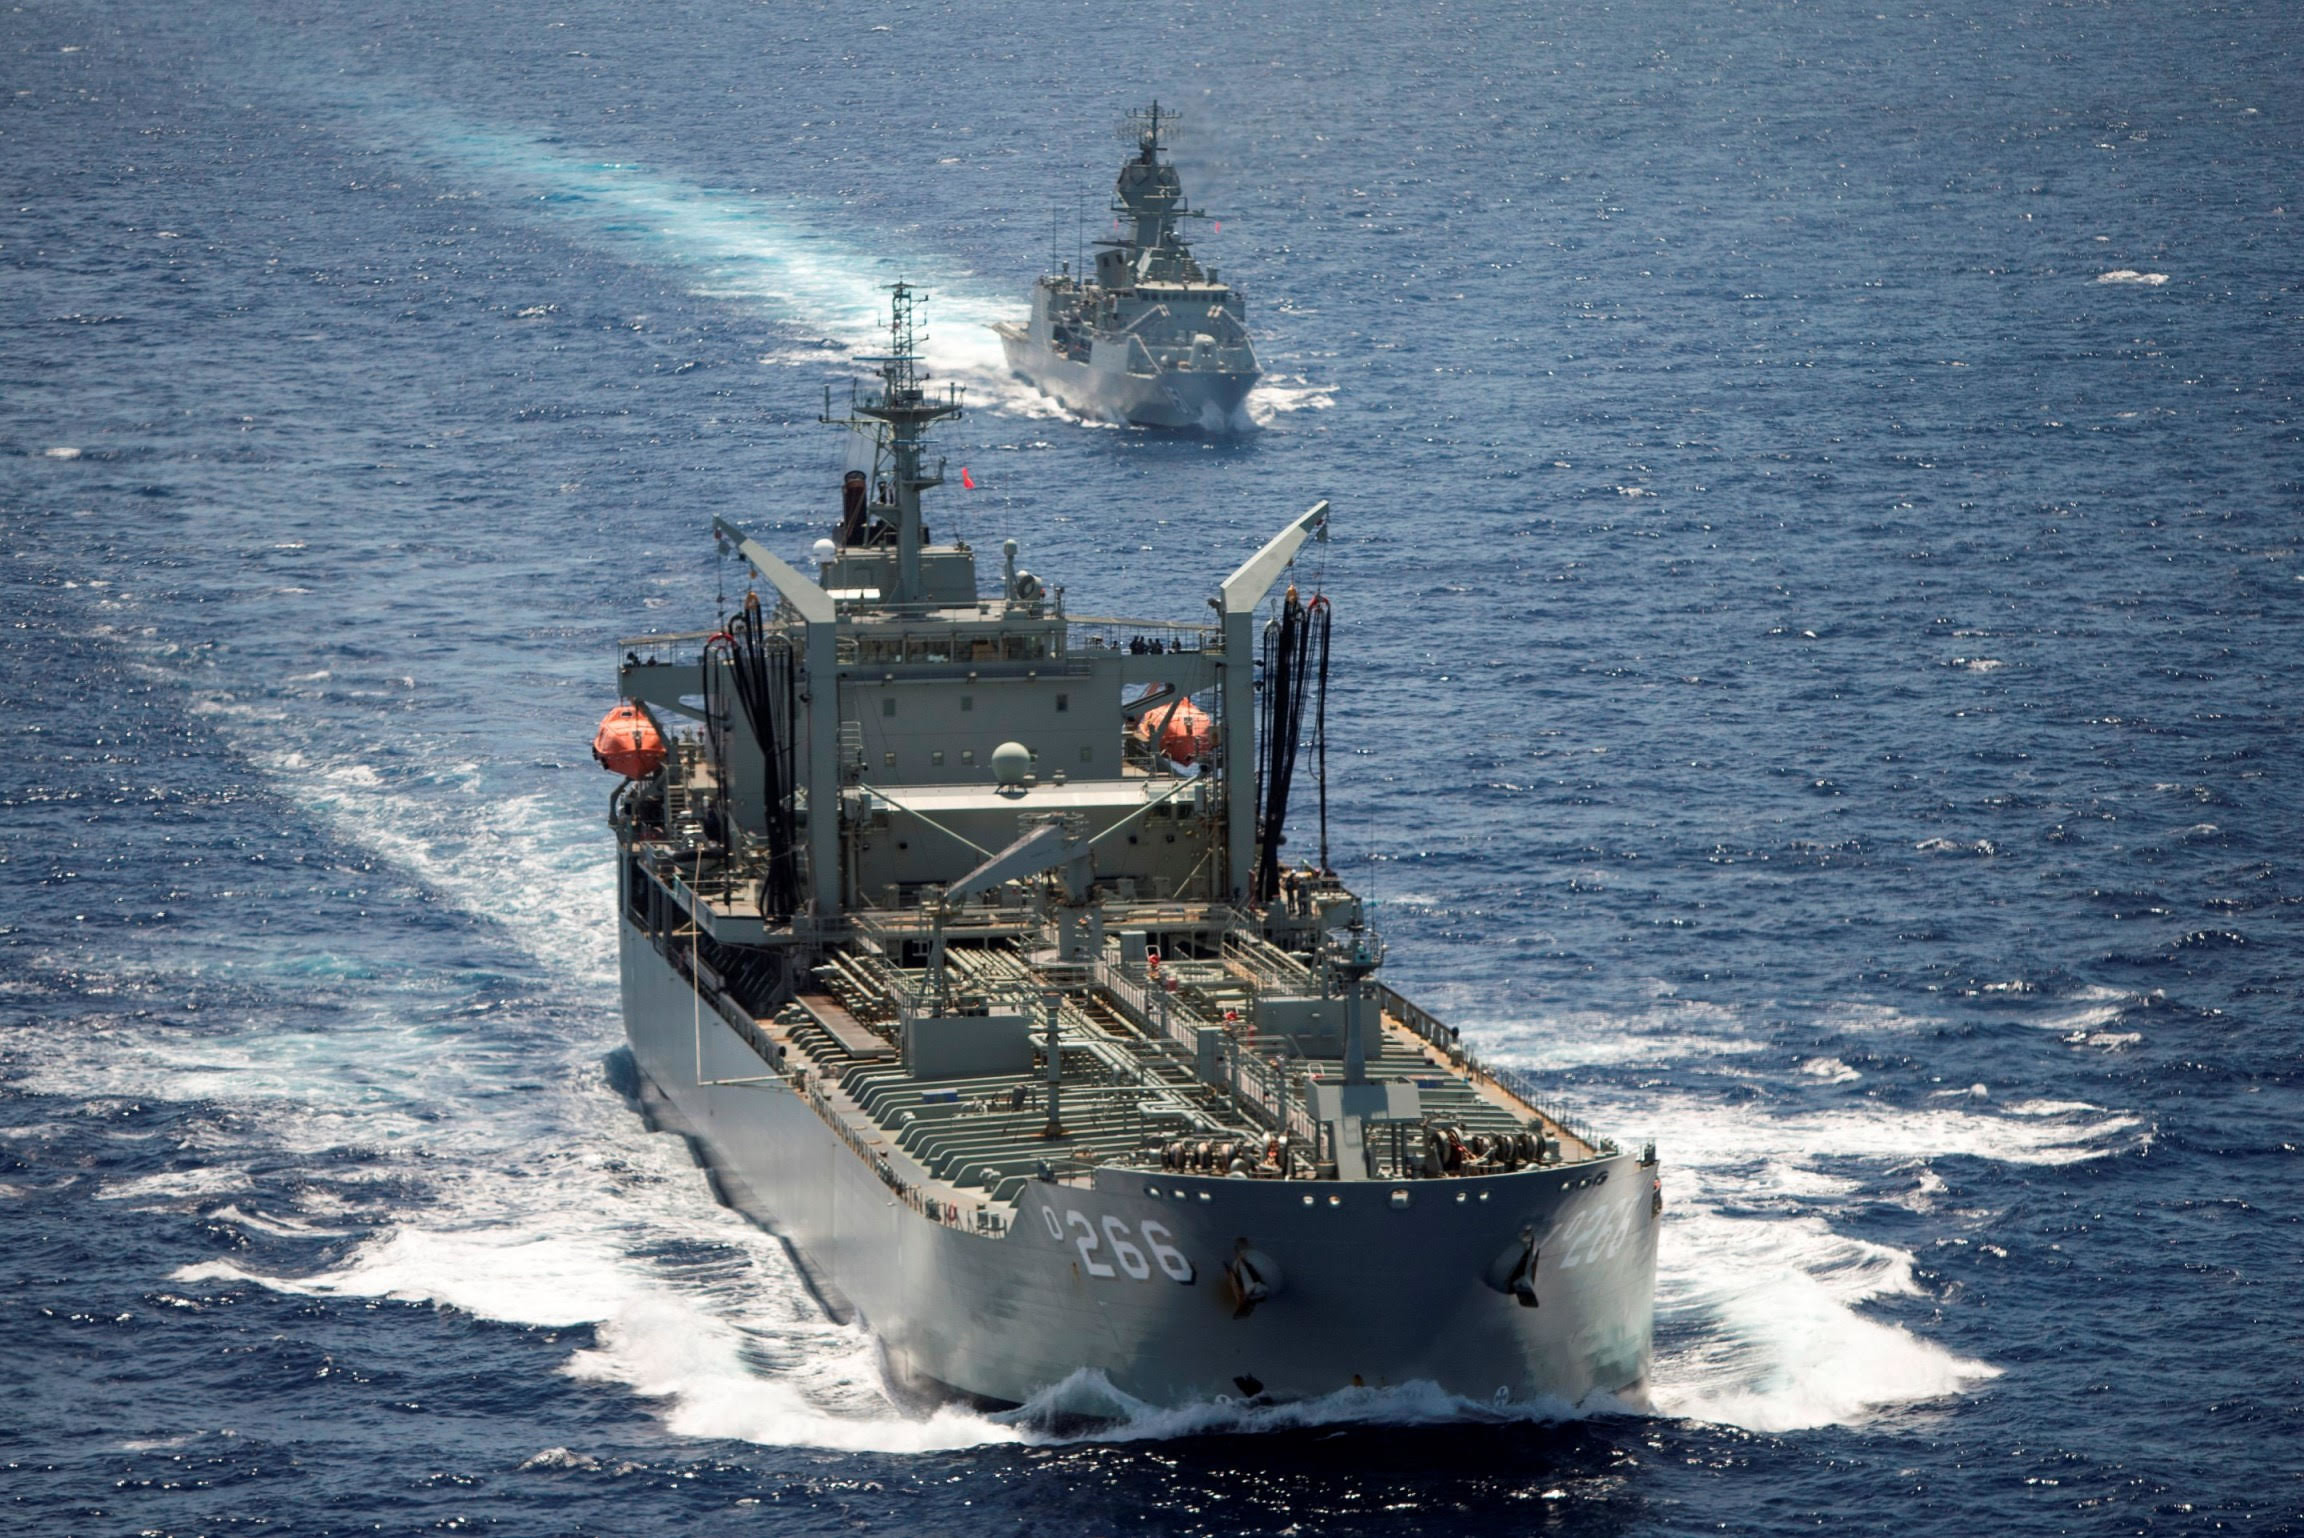 Res: 2304x1538, HD Quality Wallpaper | Collection: Military,  Australian Navy